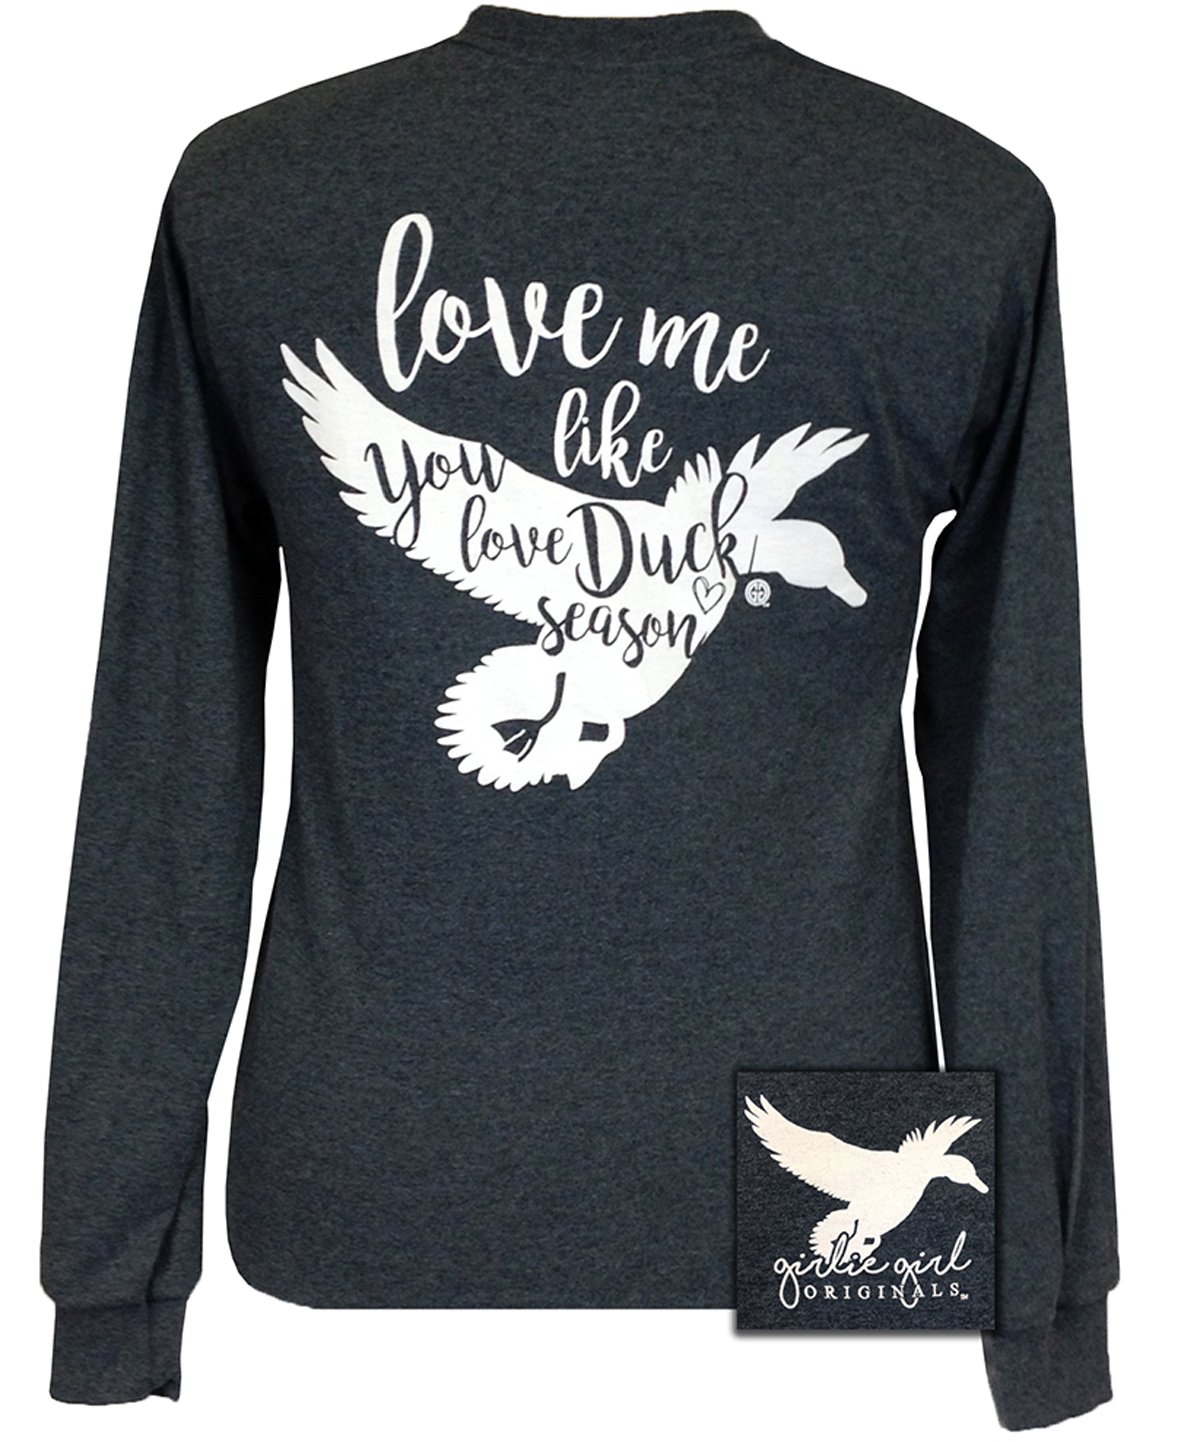 Girlie Girls Love Me Like You Love Duck Season Long Sleeve T-Shirt (Large)